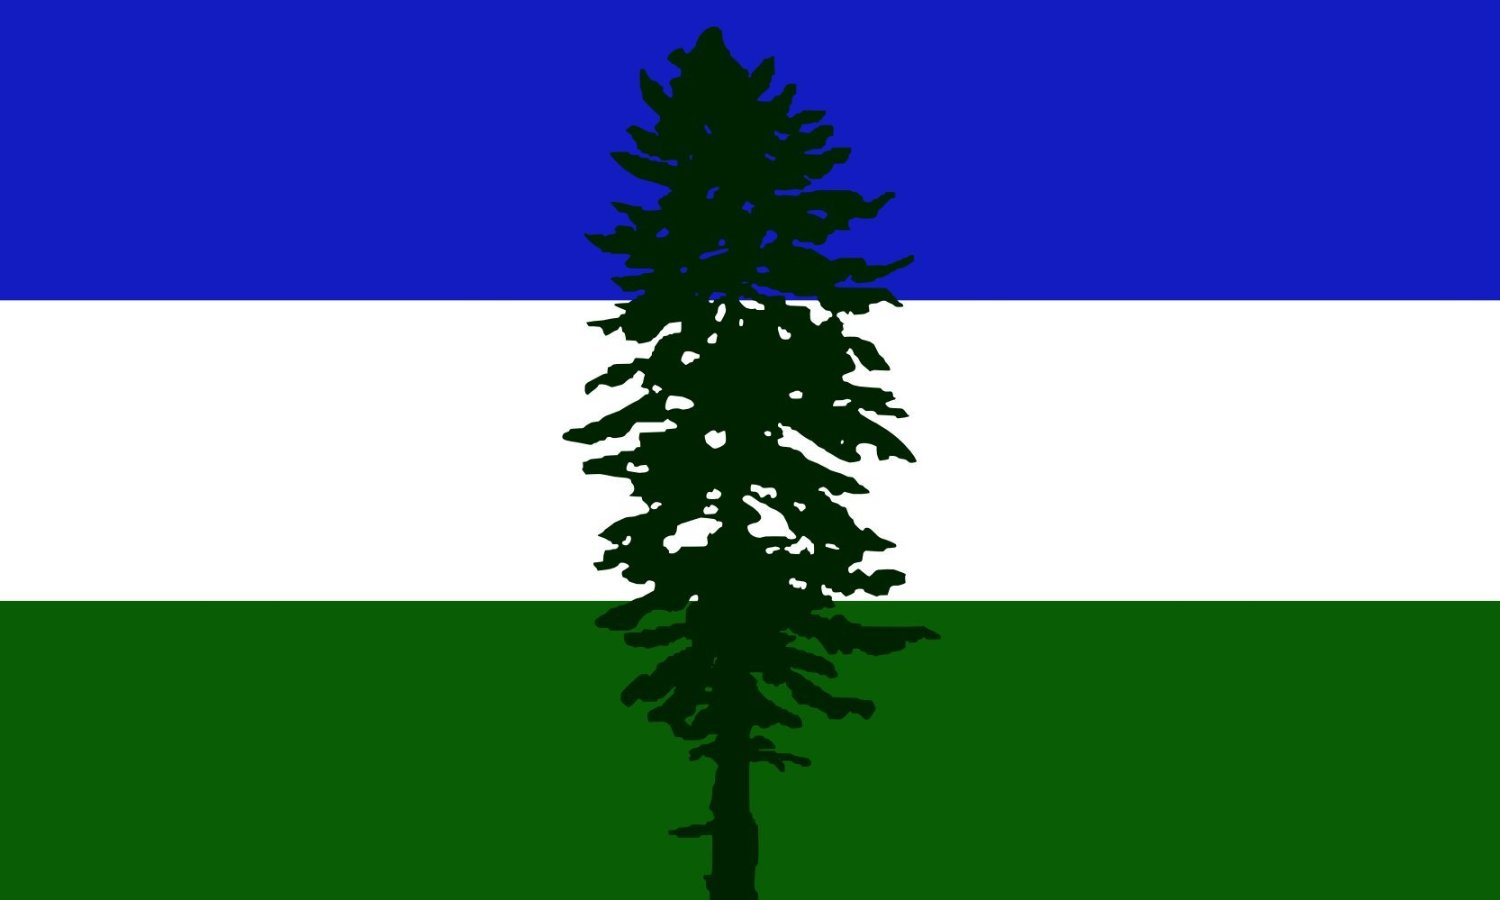 magFlags XL+ Flag Cascadia | Cascadia, based on en Image Cascadian flag 120x200cm | 4x7ft -- 100% Made in Germany -- long lasting outdoor flag